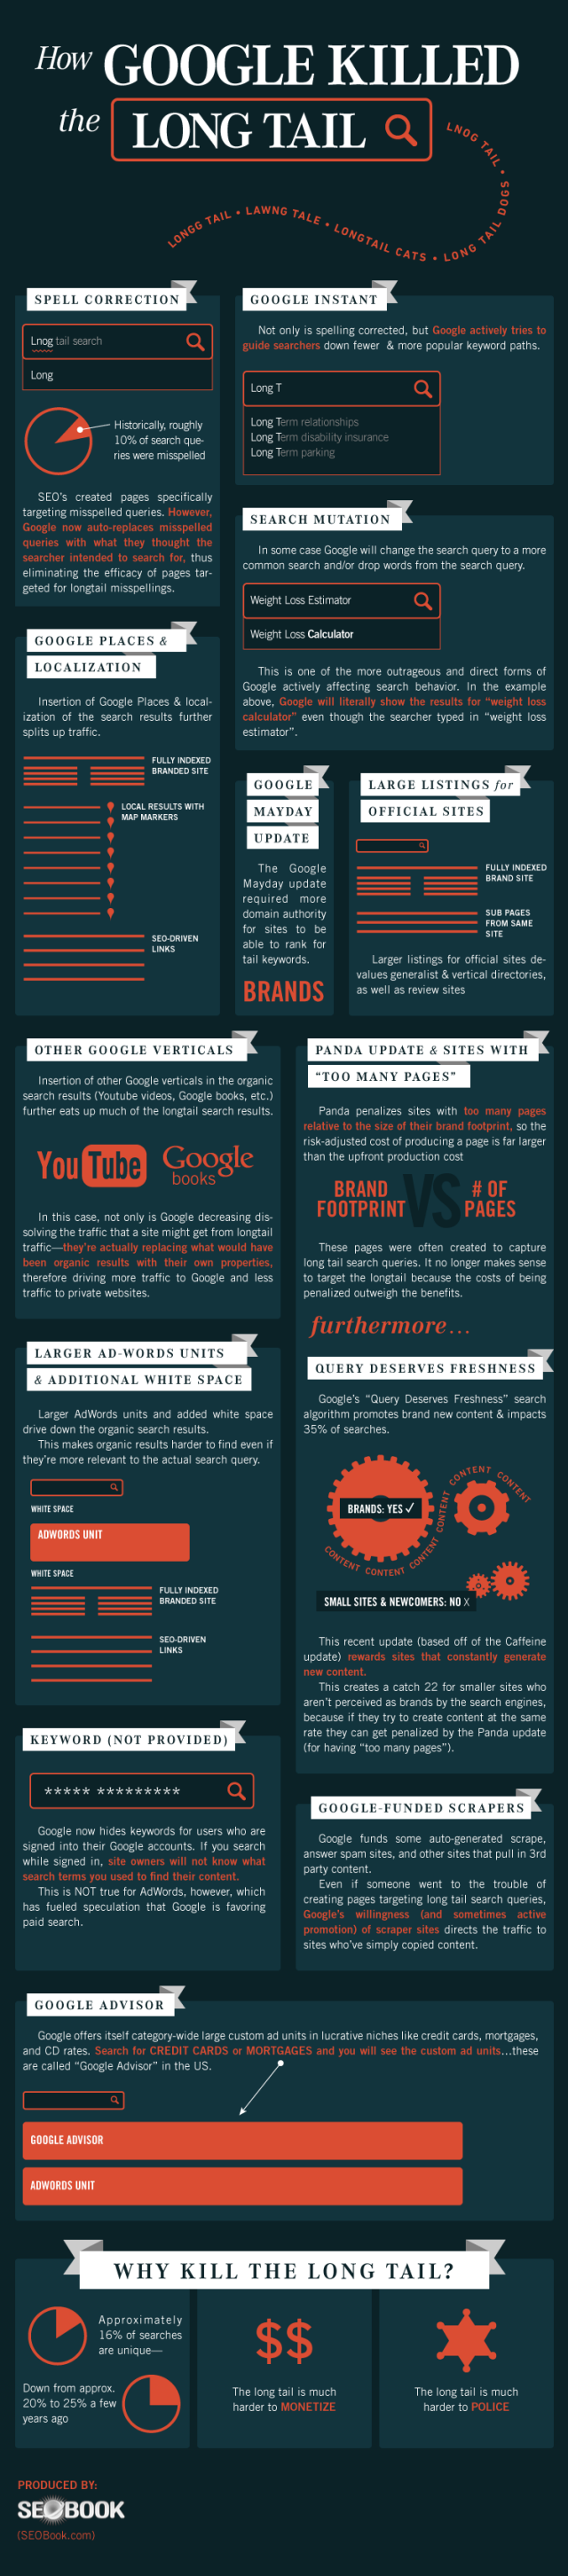 How Google Killed the Longtail Infographic